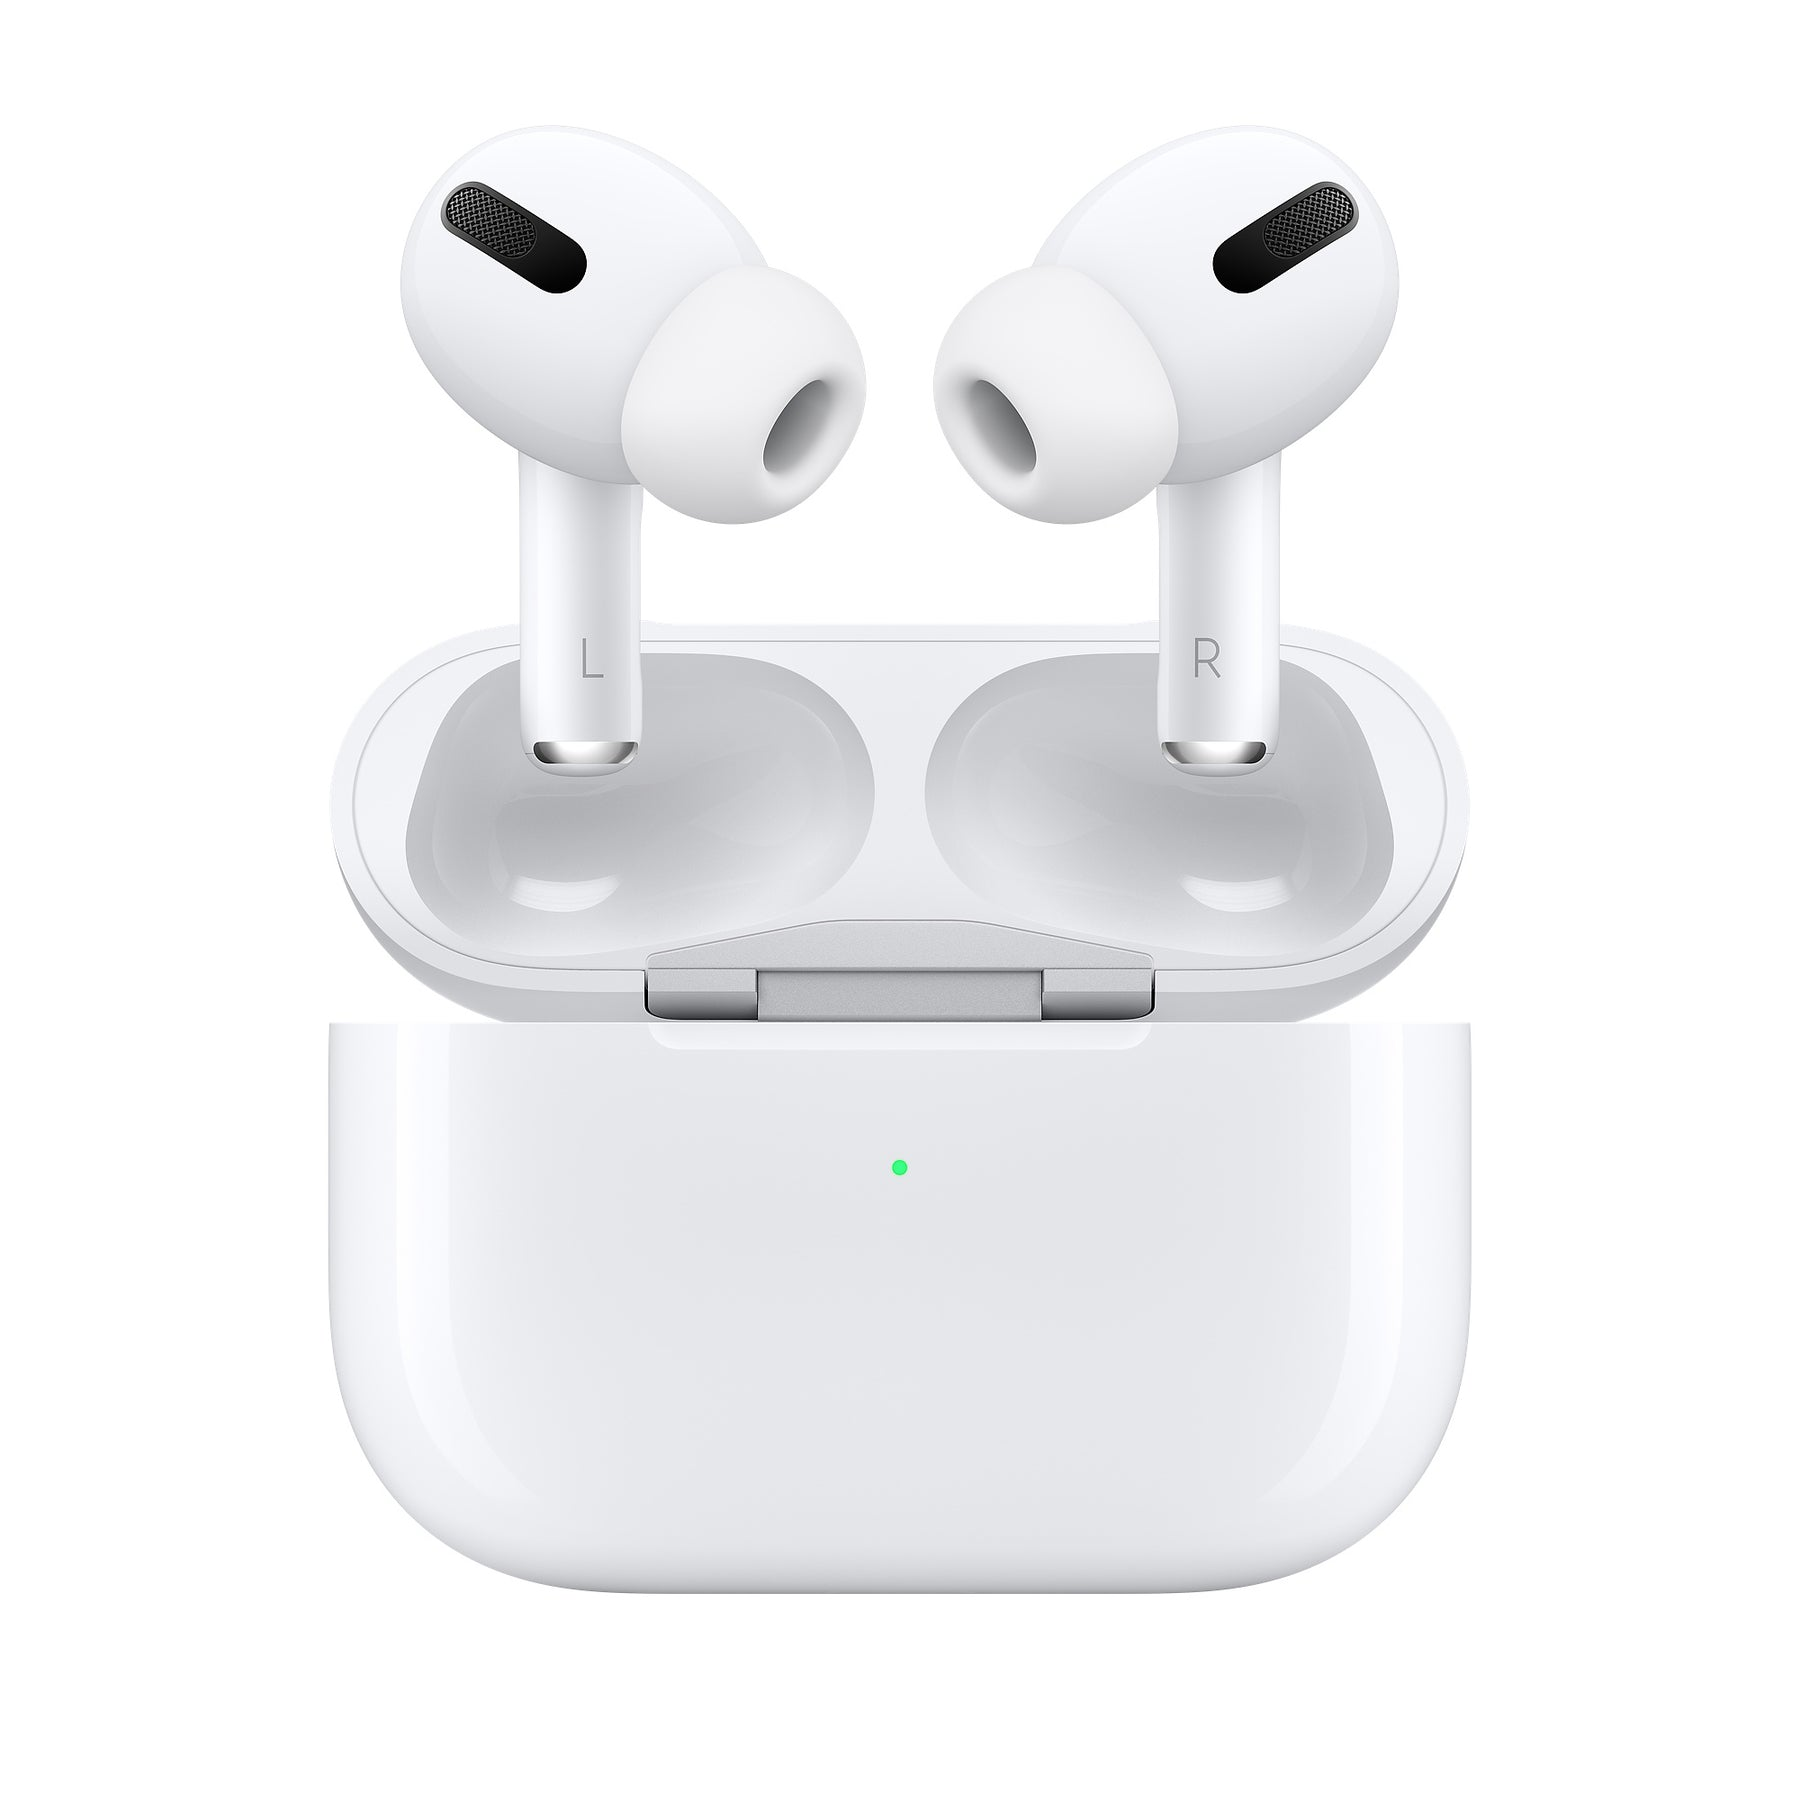 AirPods Pro - Recalled By Apple